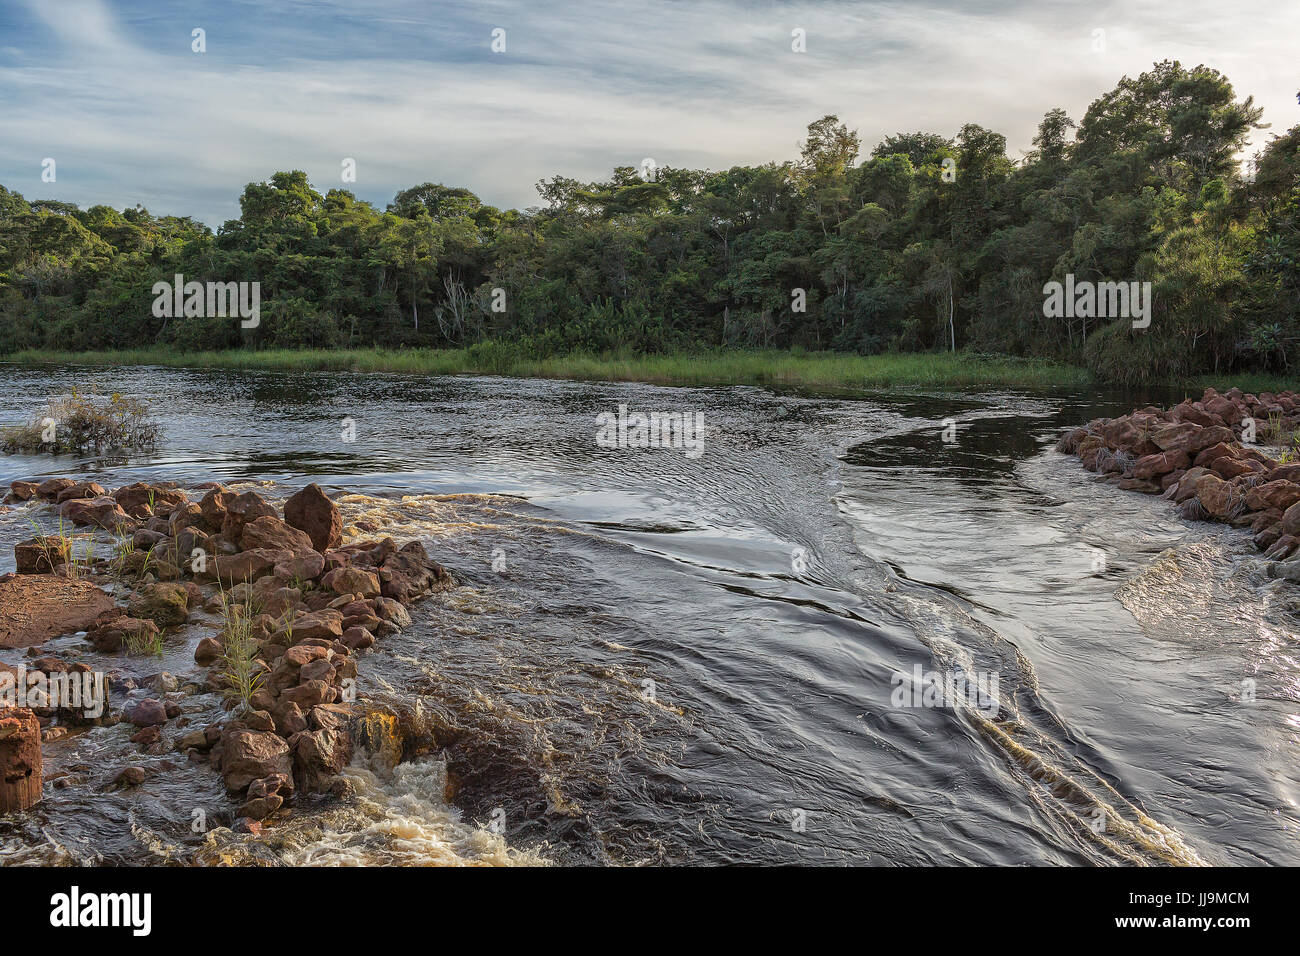 Fluent African river in Angola. - Stock Image